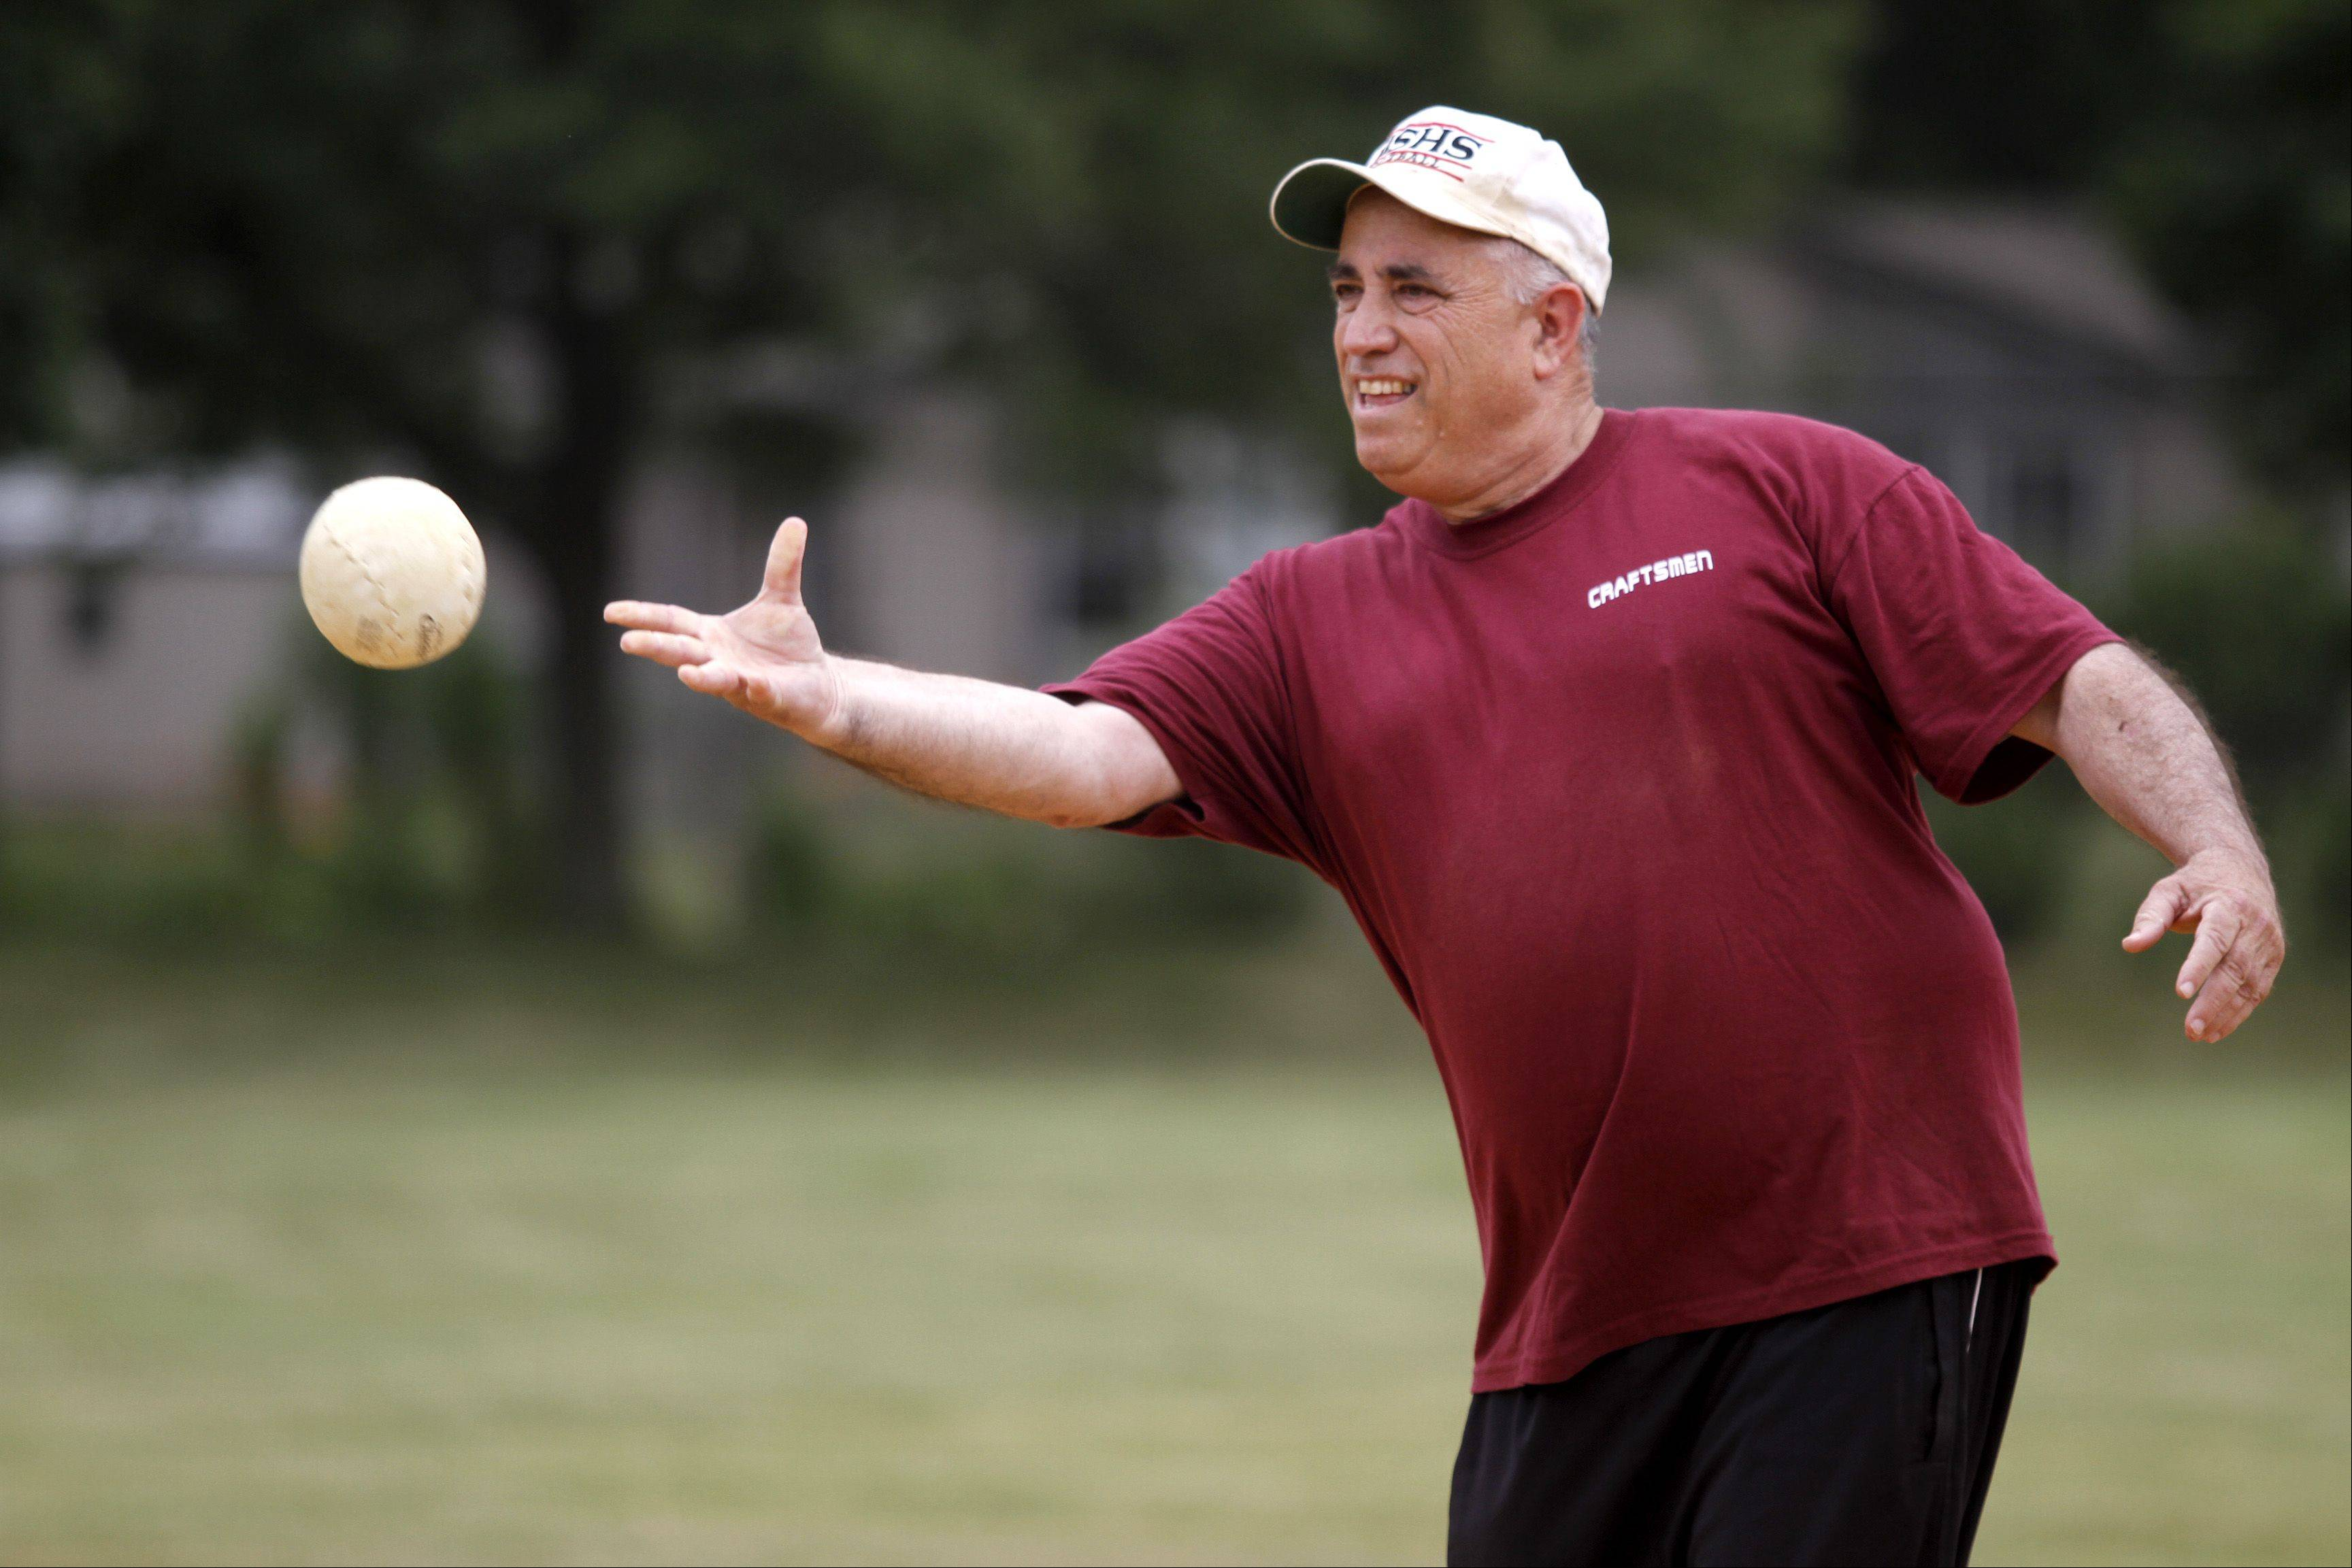 Charlie Lowy, from Arlington Heights, throws a pitch during the annual Terry Moran Softball Tournament Saturday morning in Rolling Meadows.